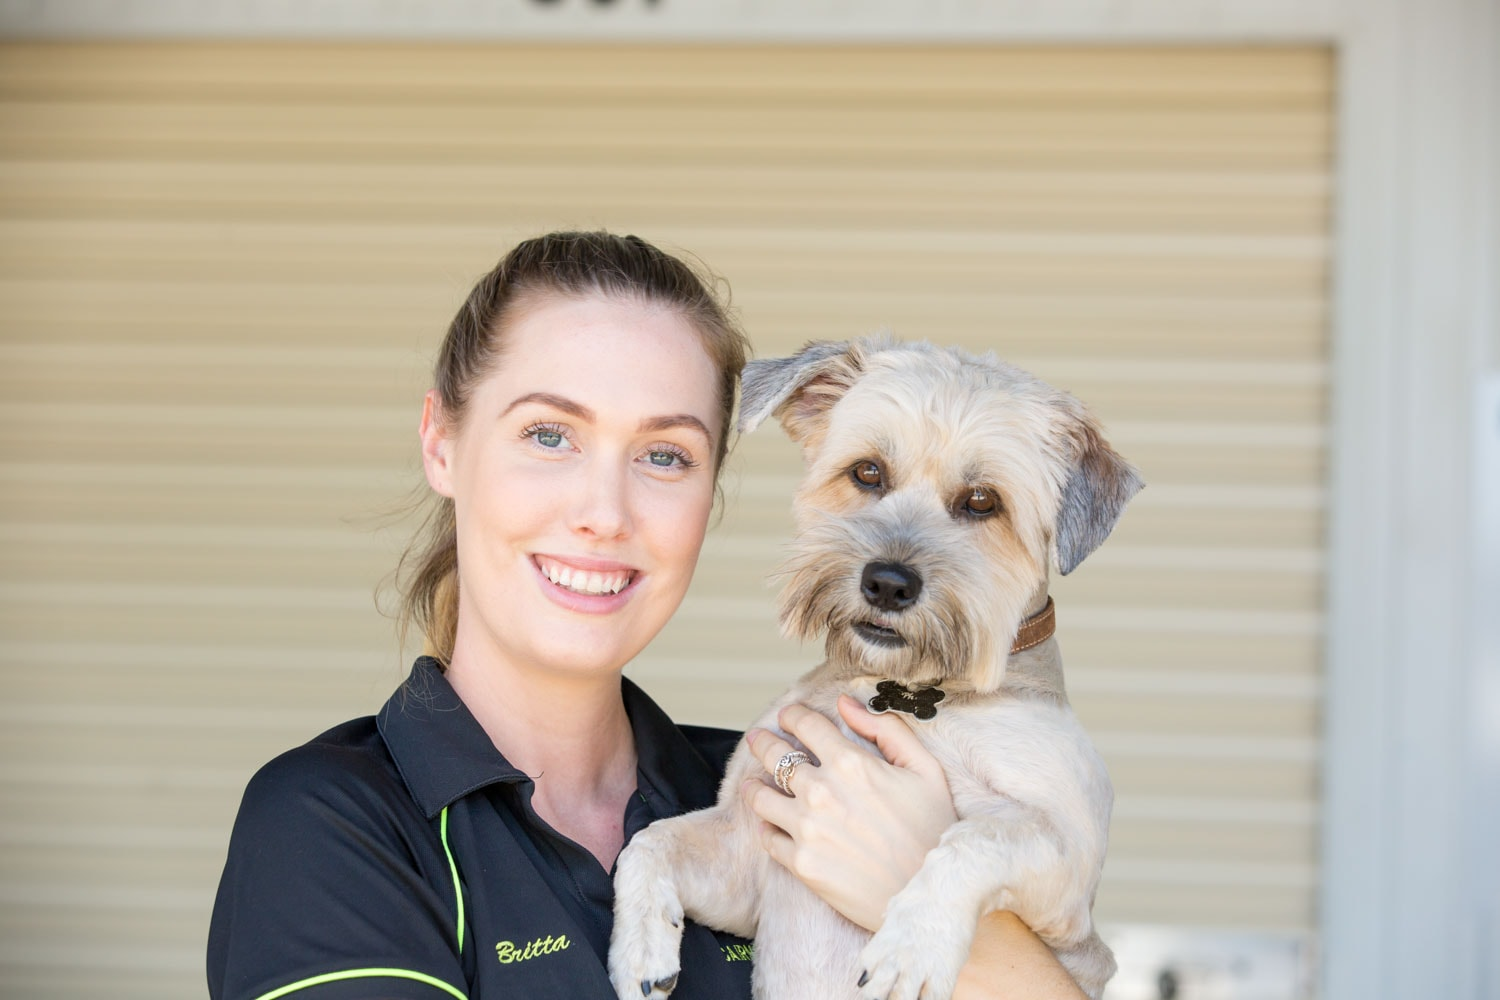 Staff member holding dog at Cairns Beaches Storage in Cairns